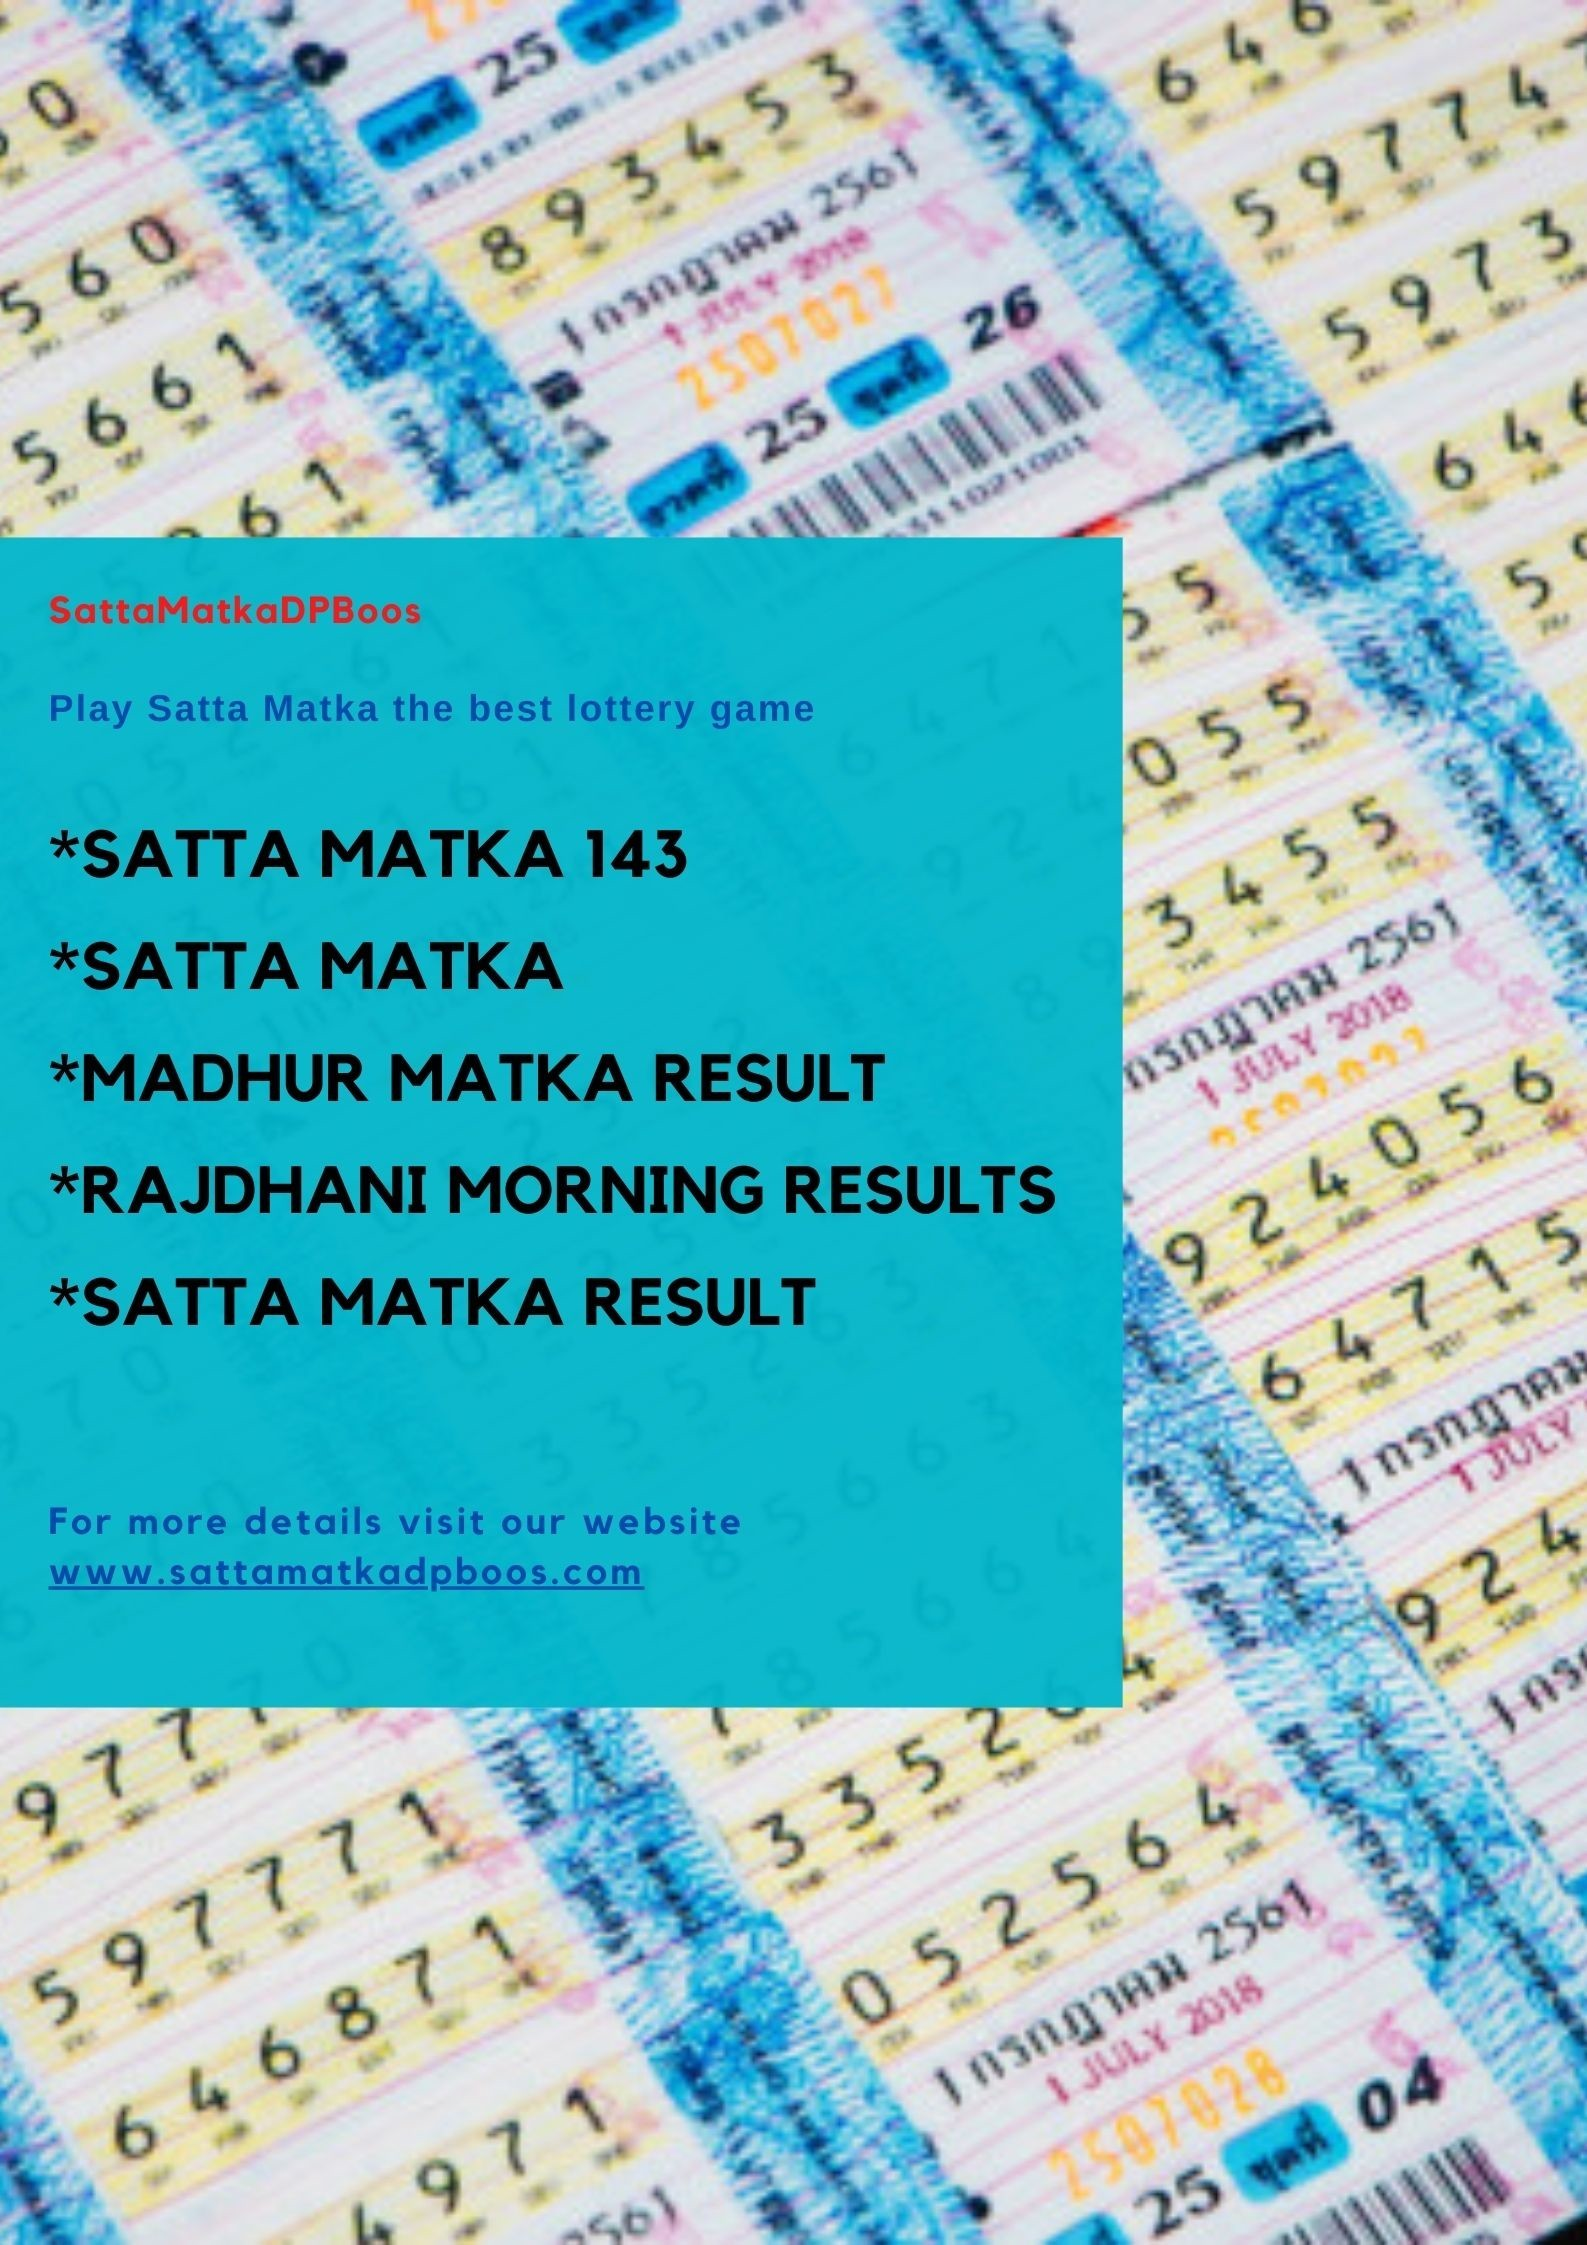 Play Satta Matka and win lots of cash